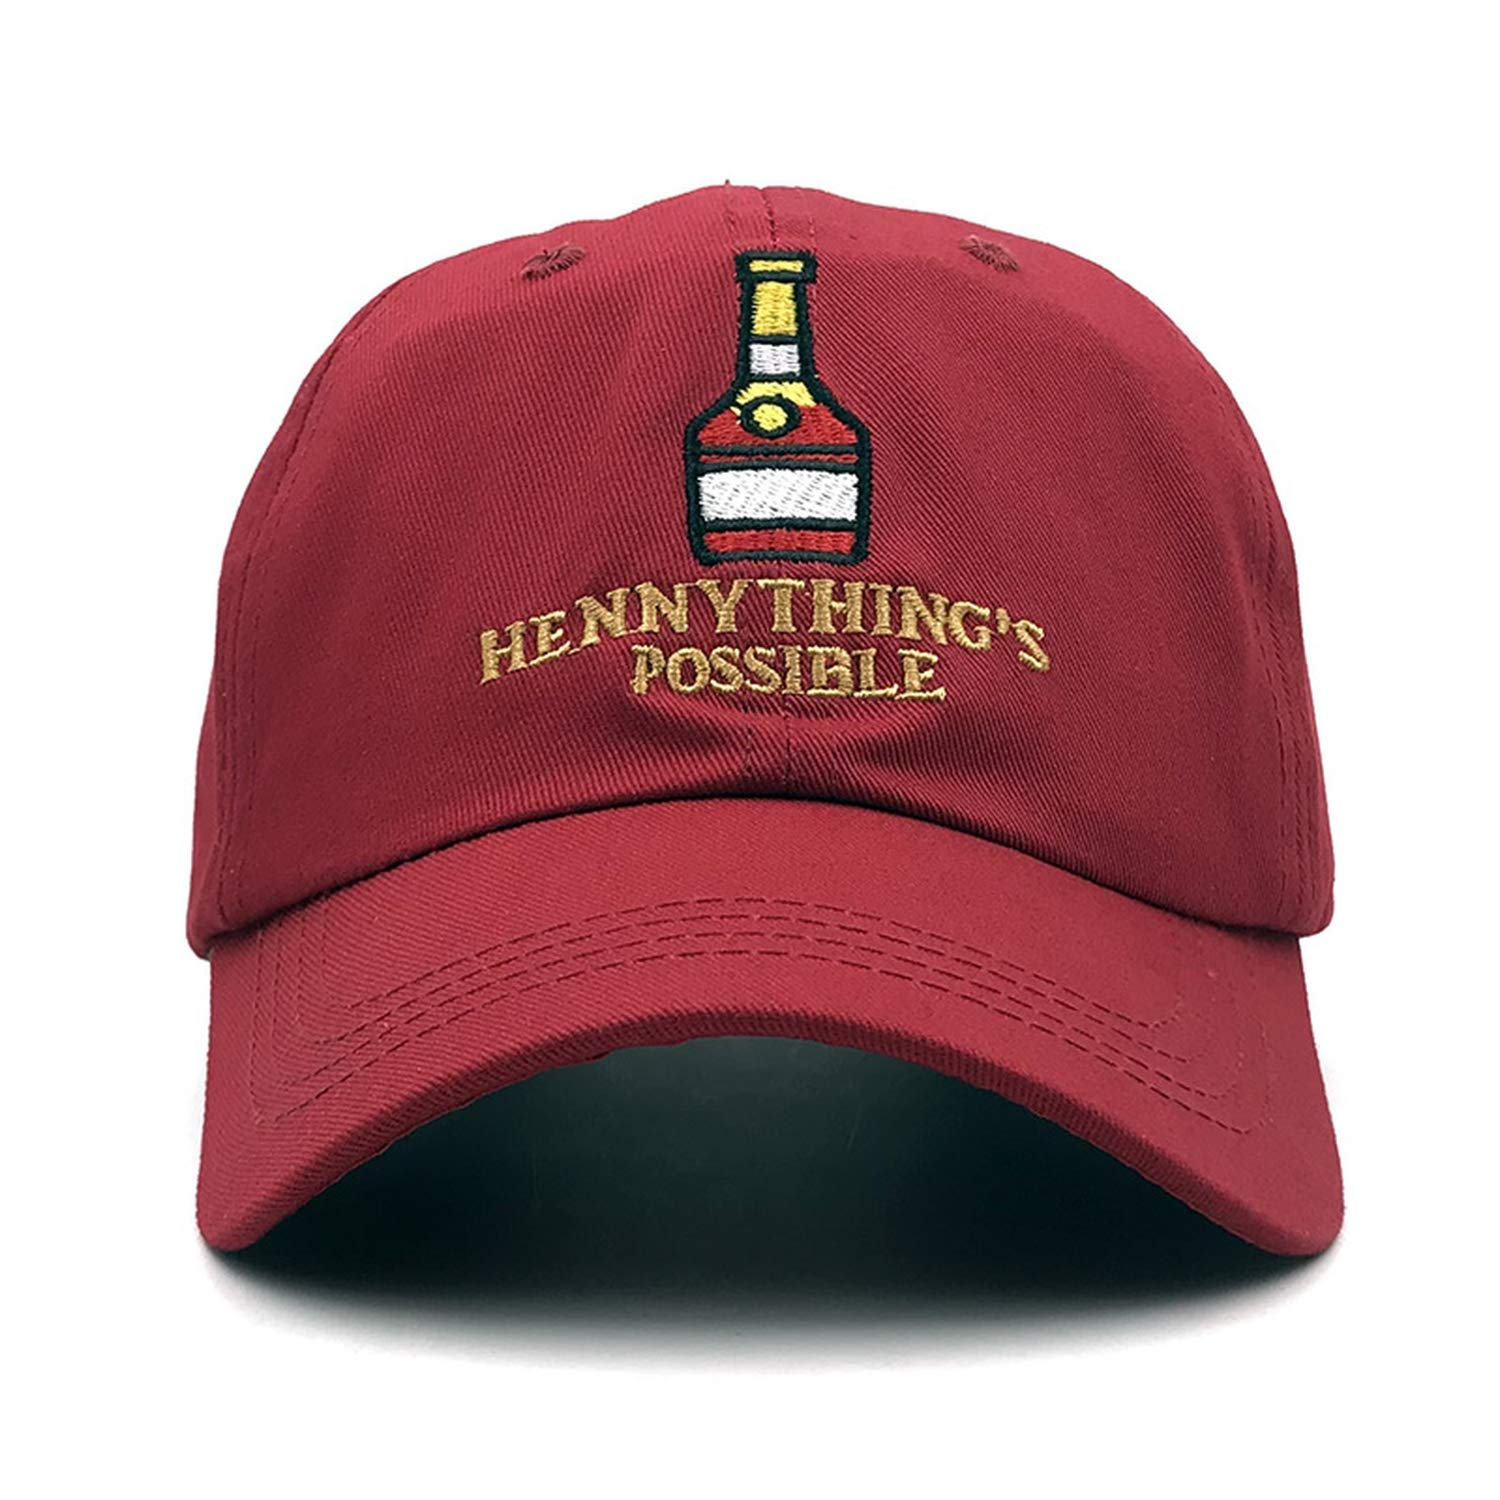 258540d3e6fbe TokLask 2019 New Henny Wine Bottle Embroidery Dad Hat Men Women Baseball  Cap Adjustable Hip-hop Cap Hats Bone Garros at Amazon Women s Clothing  store